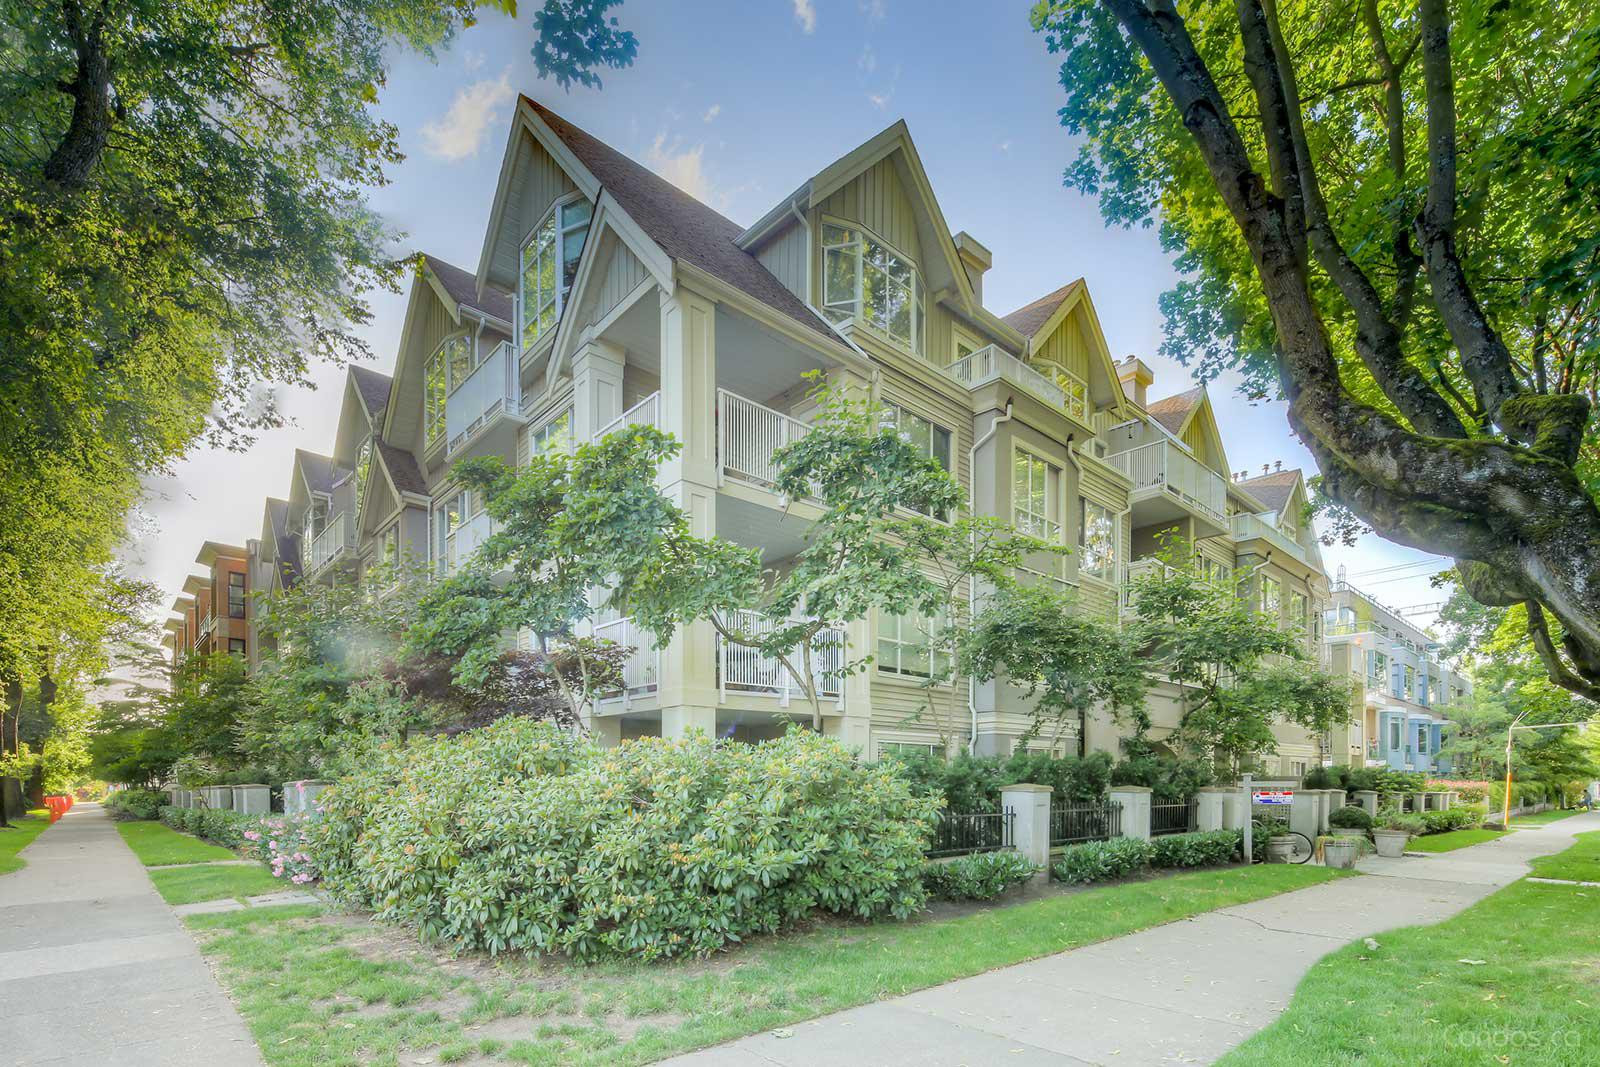 Davenport at 2755 Maple St, Vancouver 1